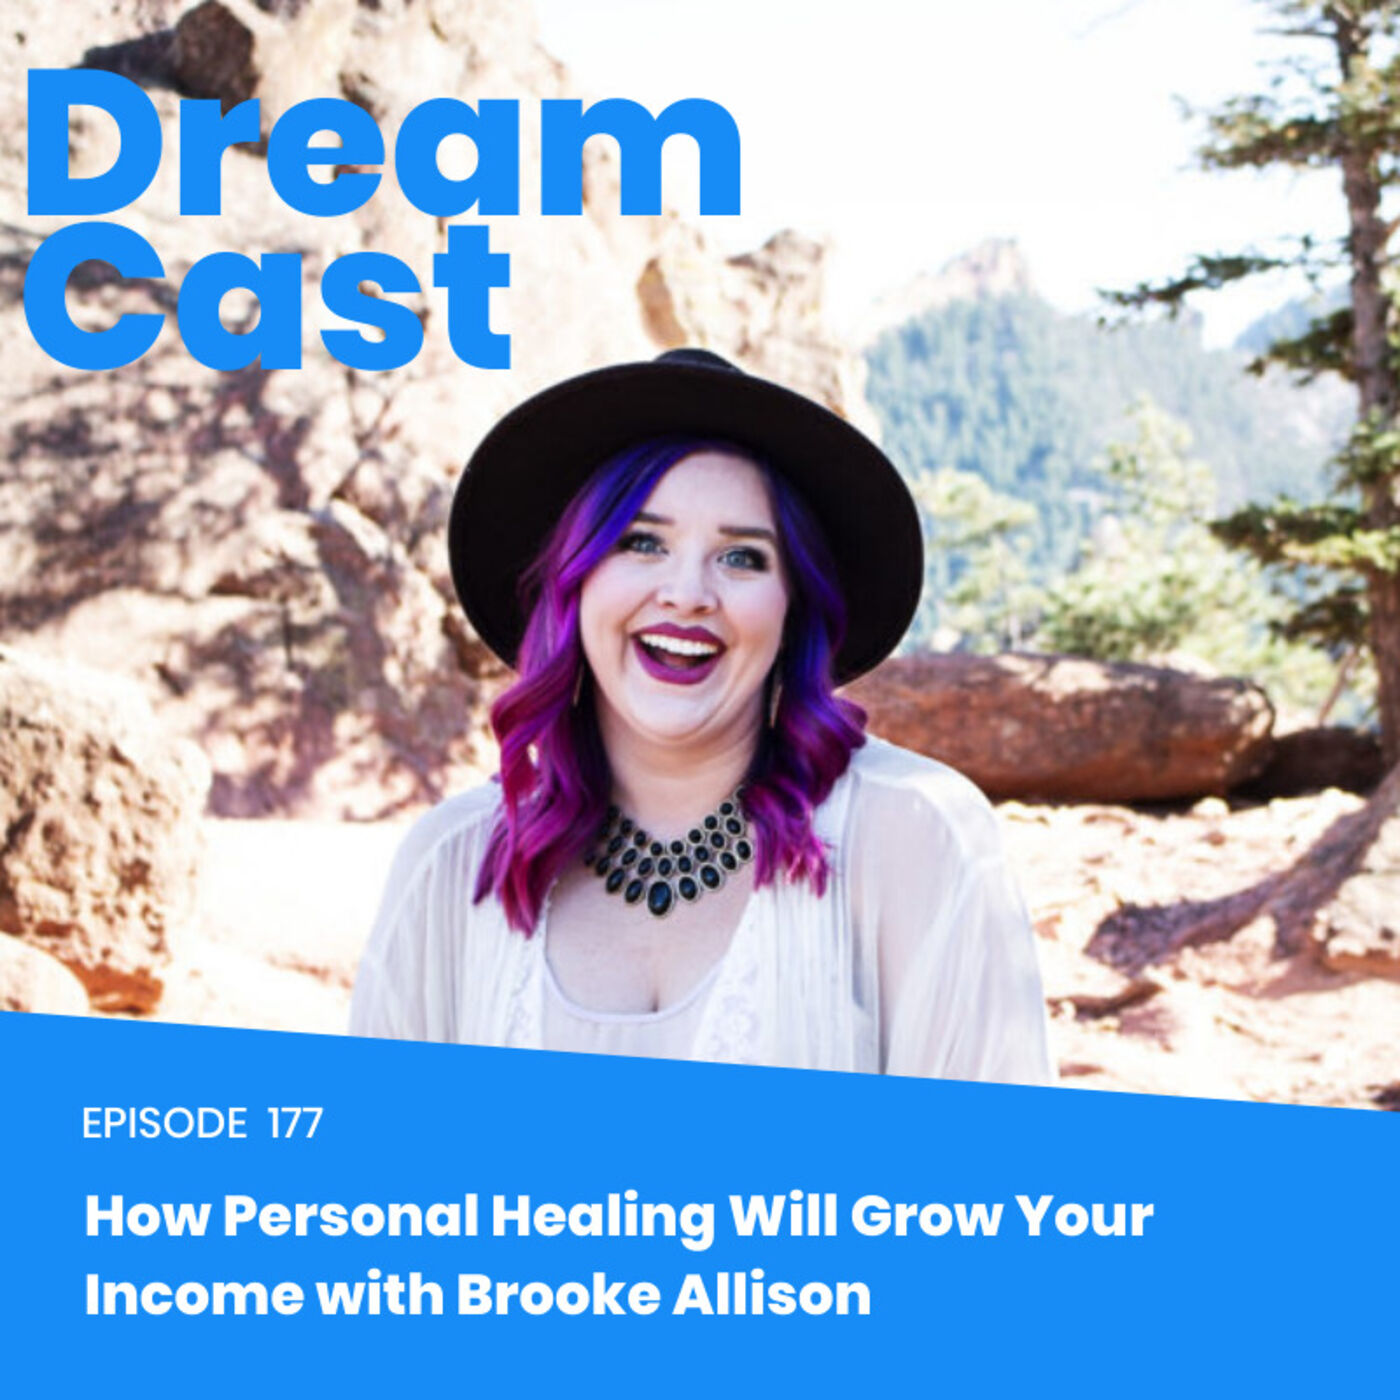 Ep. 177 - How Personal Healing Will Double Your Income with Brooke Allison